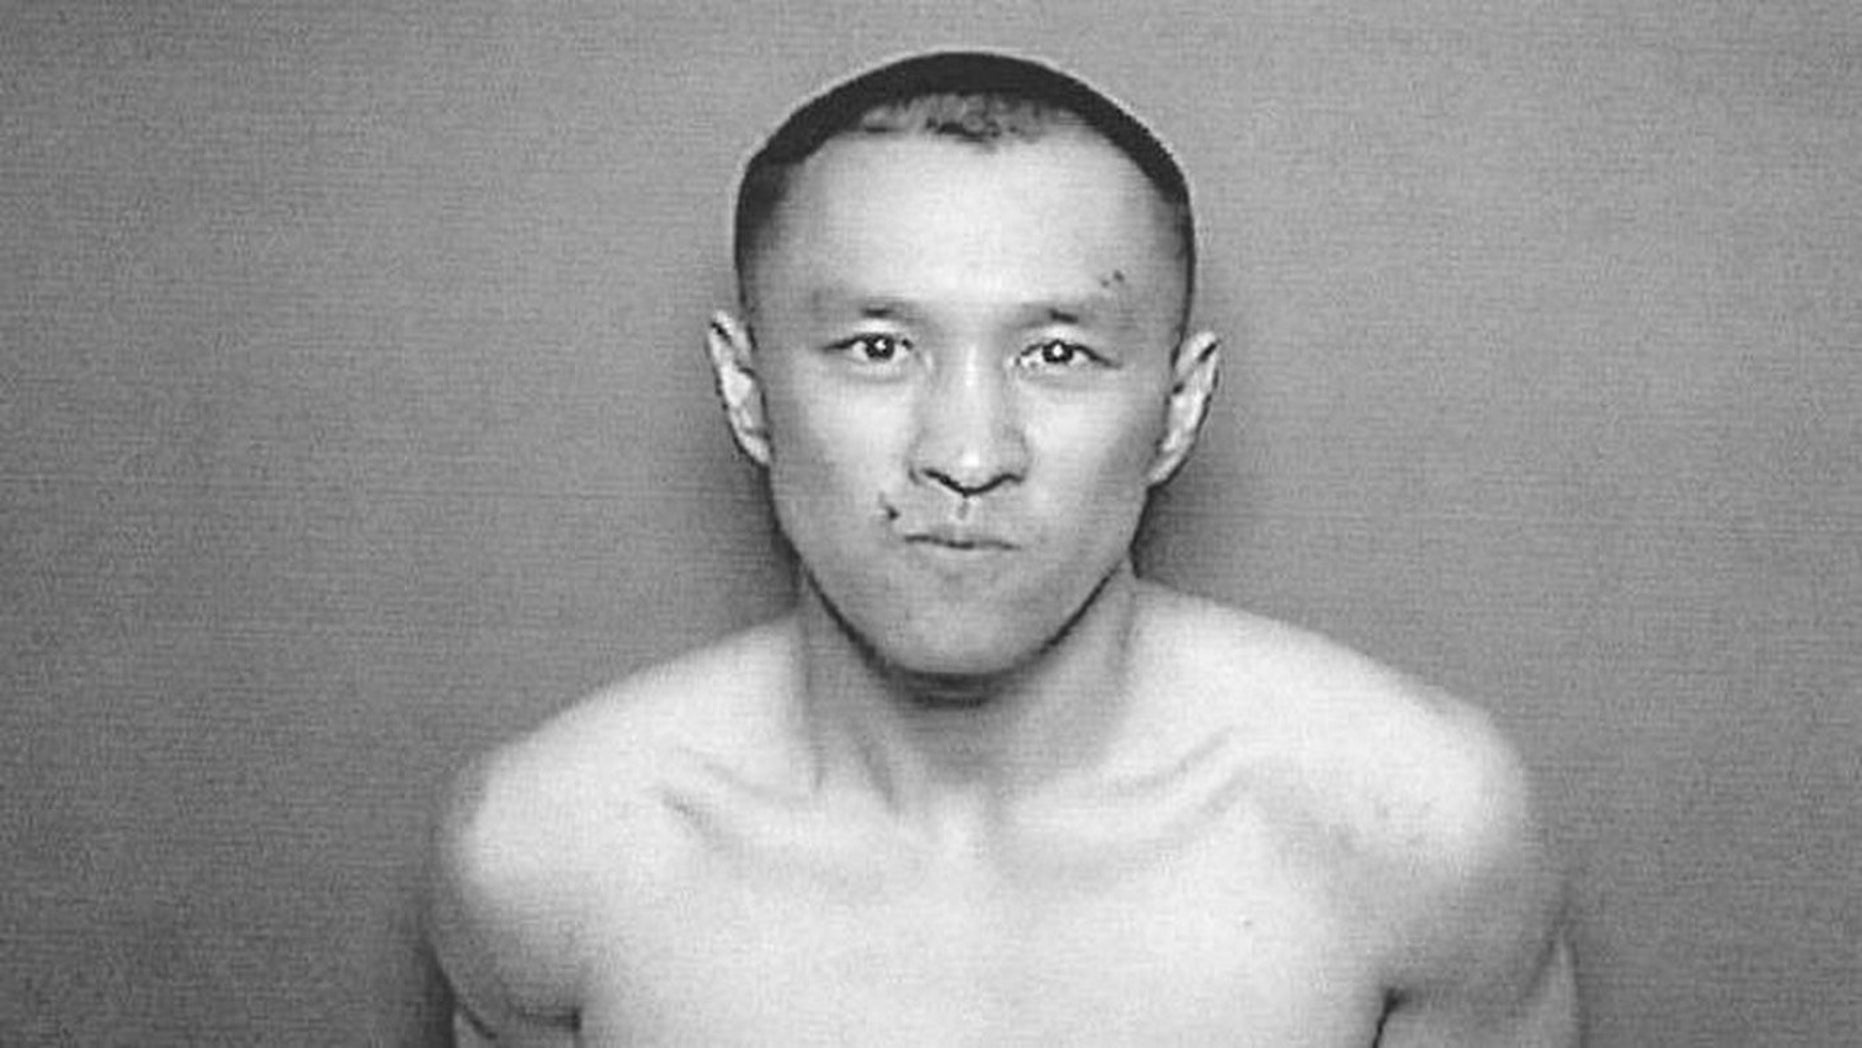 Yihong Peng, 30, was booked on murder charges Friday for the fatal stabbing of his mother and critical injury of his father.